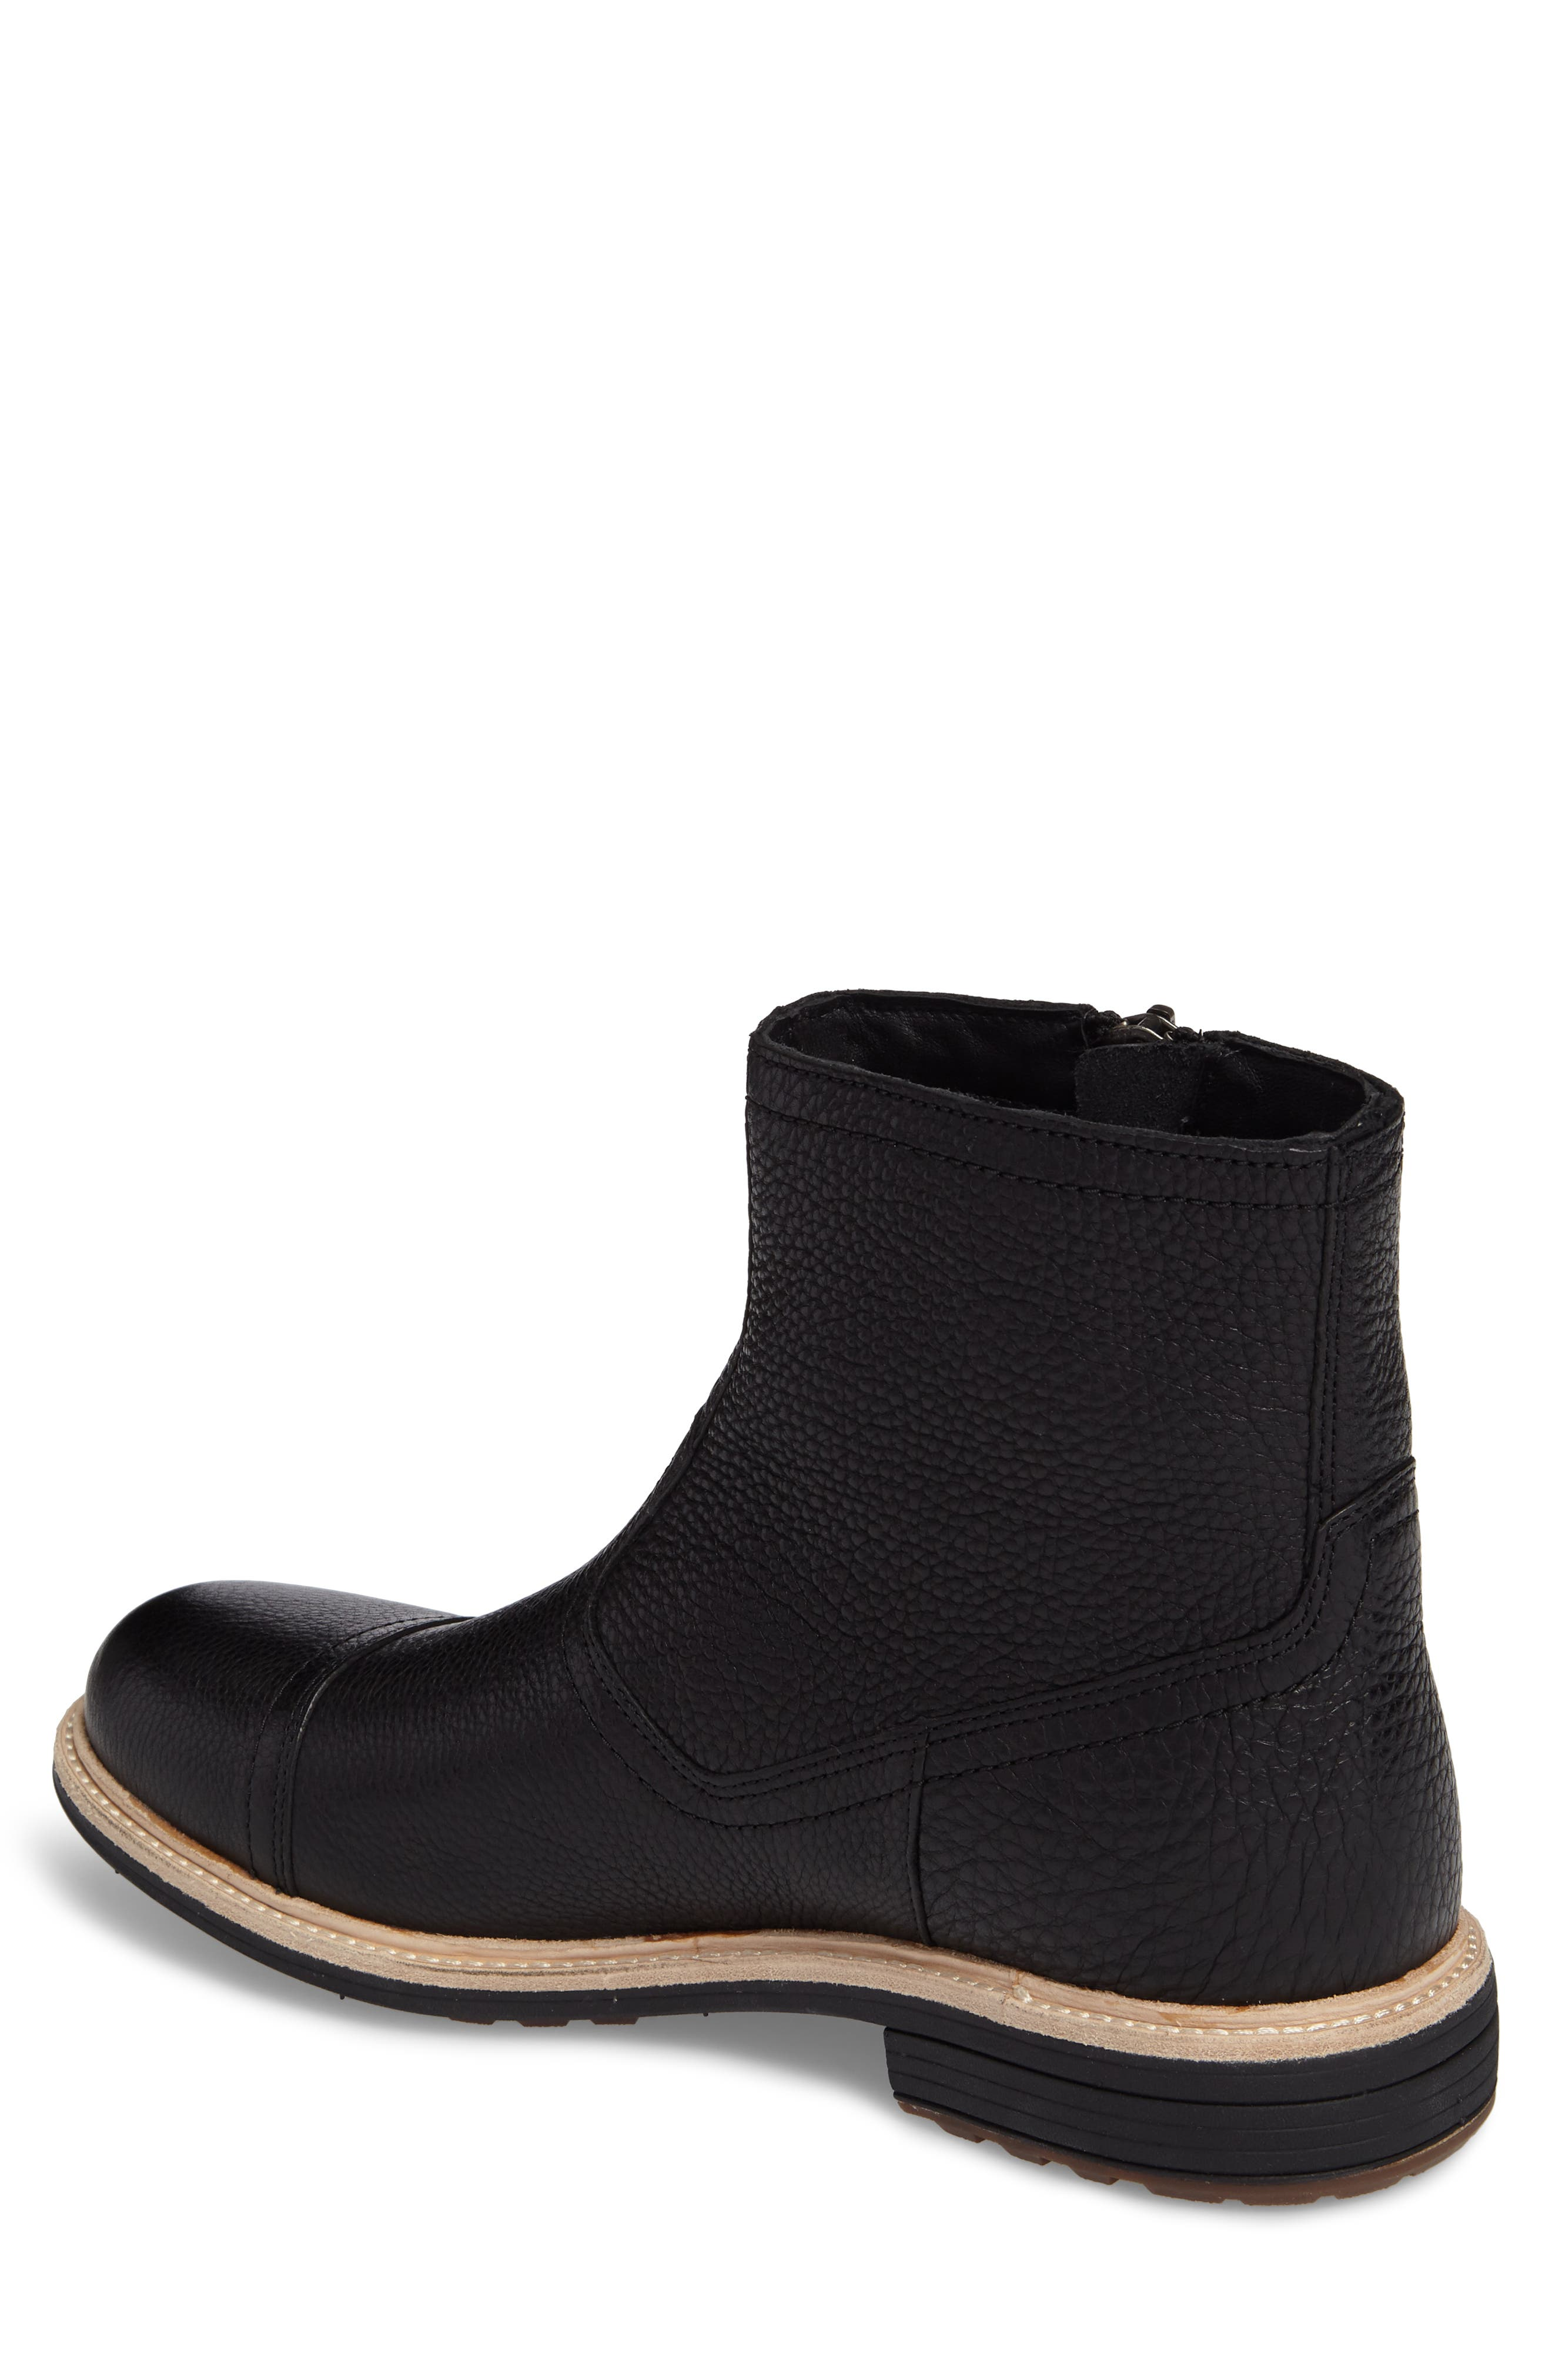 Dalvin Zip Boot with Genuine Shearling,                             Alternate thumbnail 2, color,                             BLACK